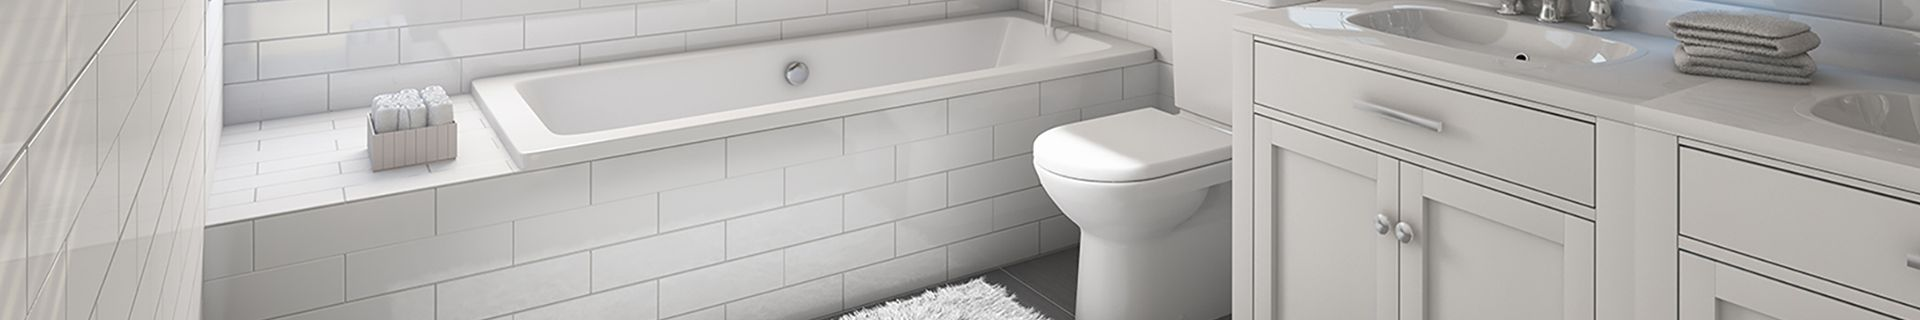 Bathroom with bath, toilet and sink